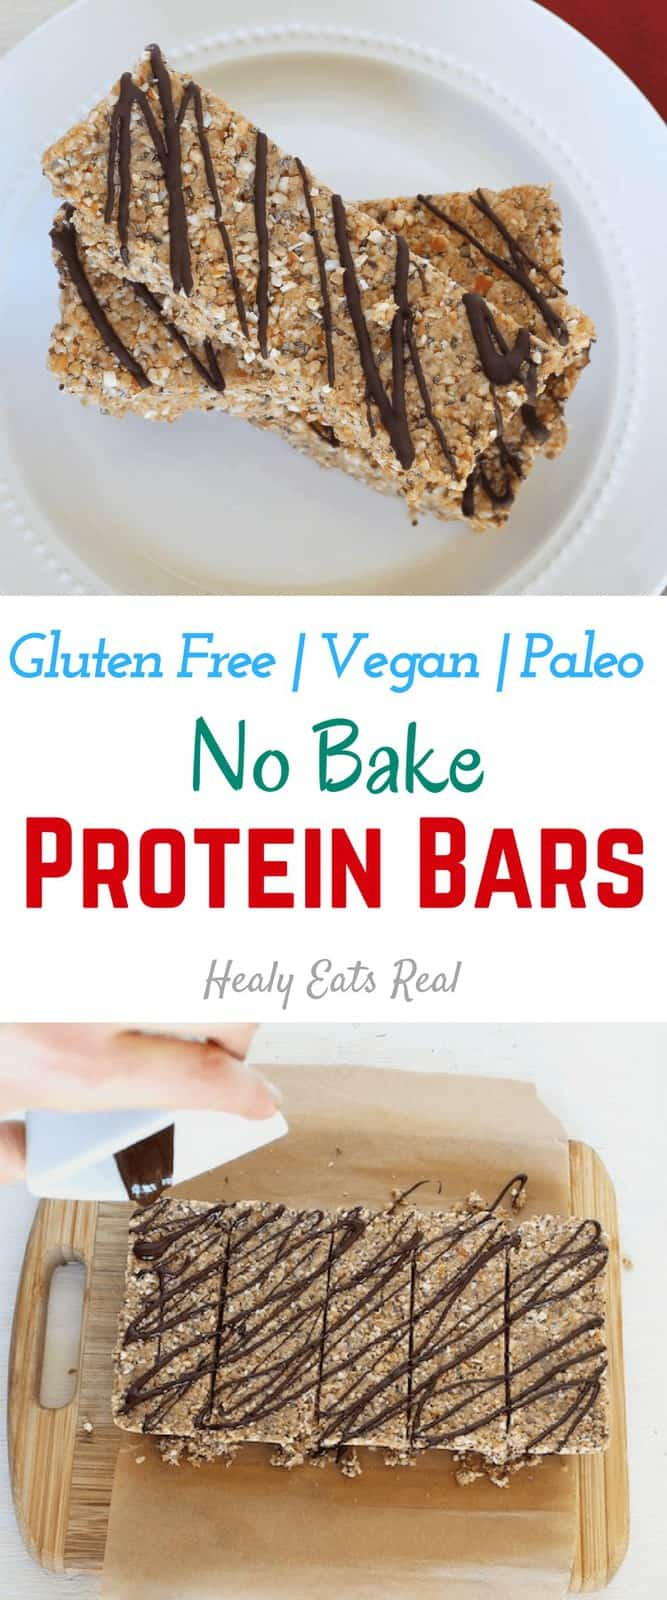 No Bake Protein Bars Recipe (Paleo, Vegan)-These no bake protein bars are paleo, vegan and gluten free. They make a delicious quick and easy high protein breakfast that will help keep you full! #proteinbars #paleo #nobake